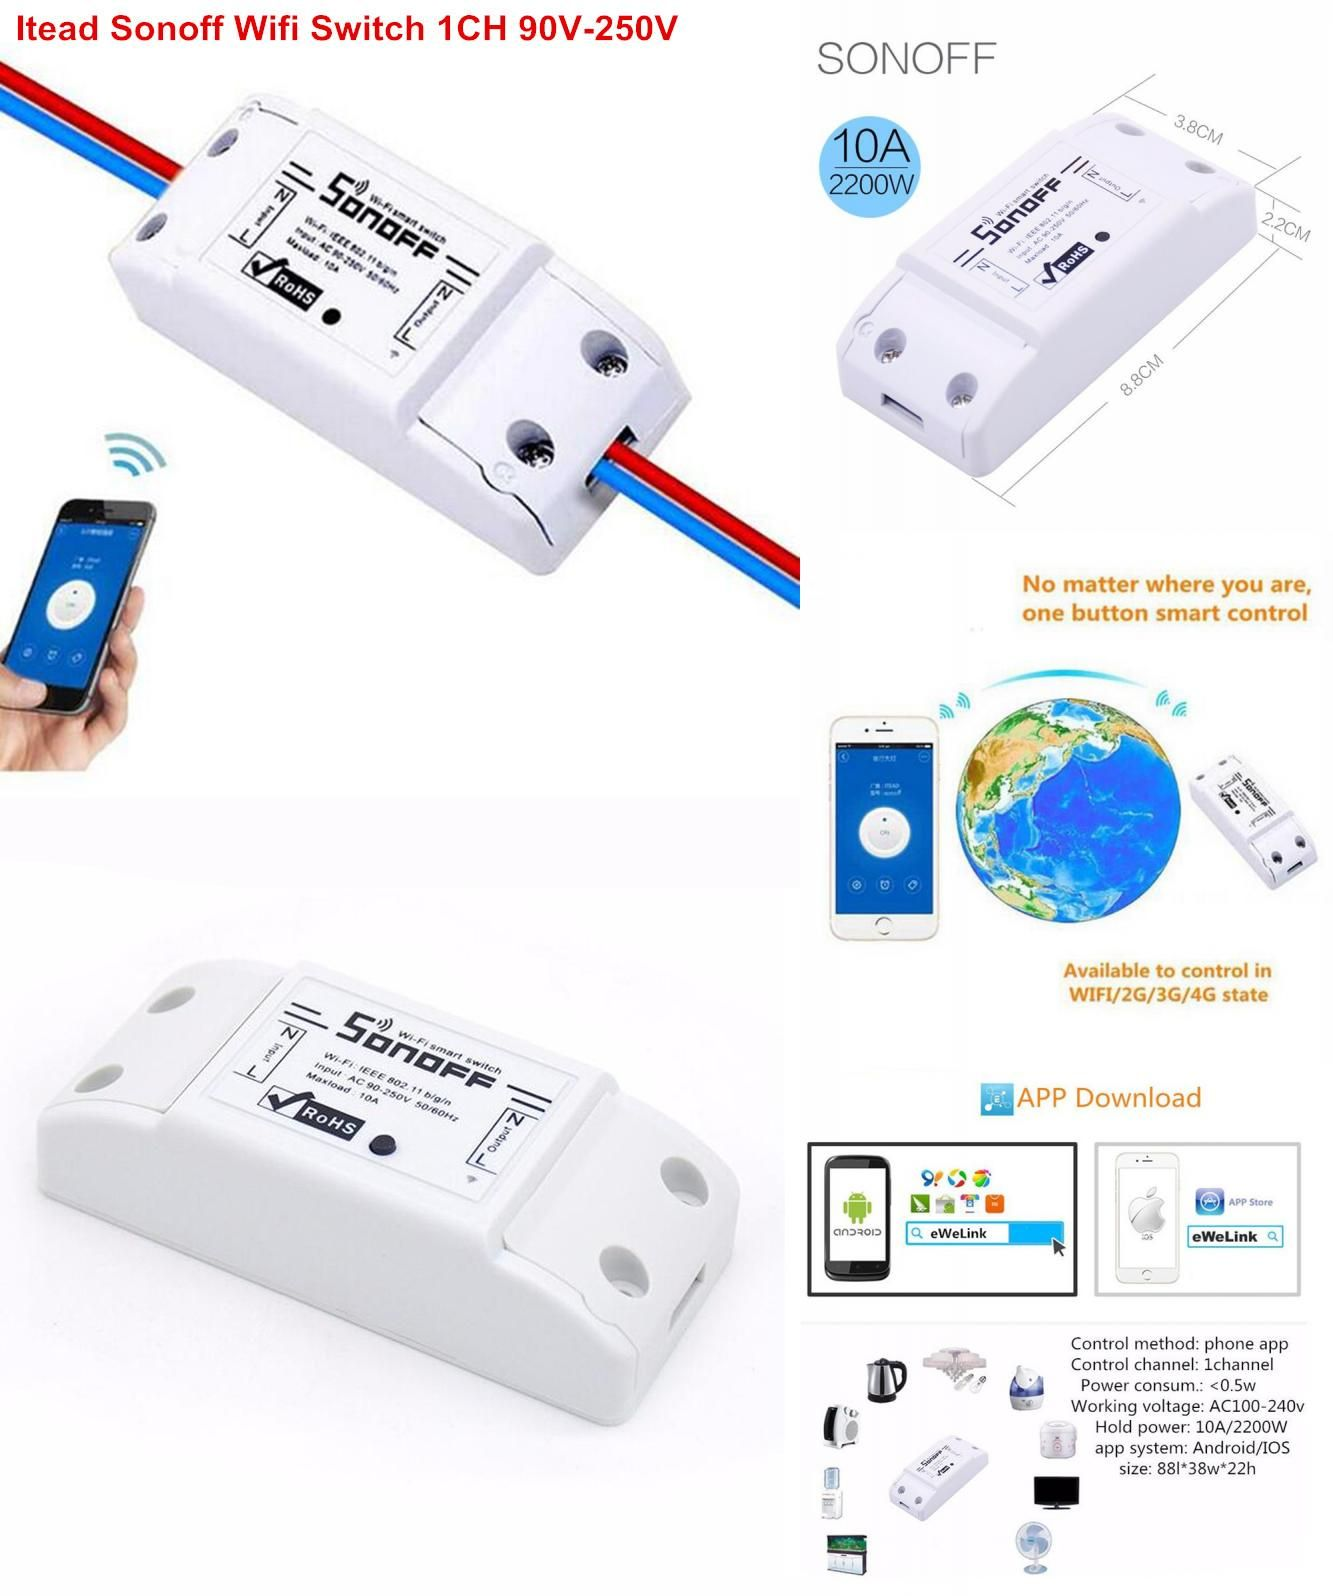 Visit To Buy Itead Sonoff Wifi Switch 1ch Diy Schakelaar 220v Ac 90v 250v Light Timer Switches For Smart H Smart Home Automation Lights Timer Home Automation